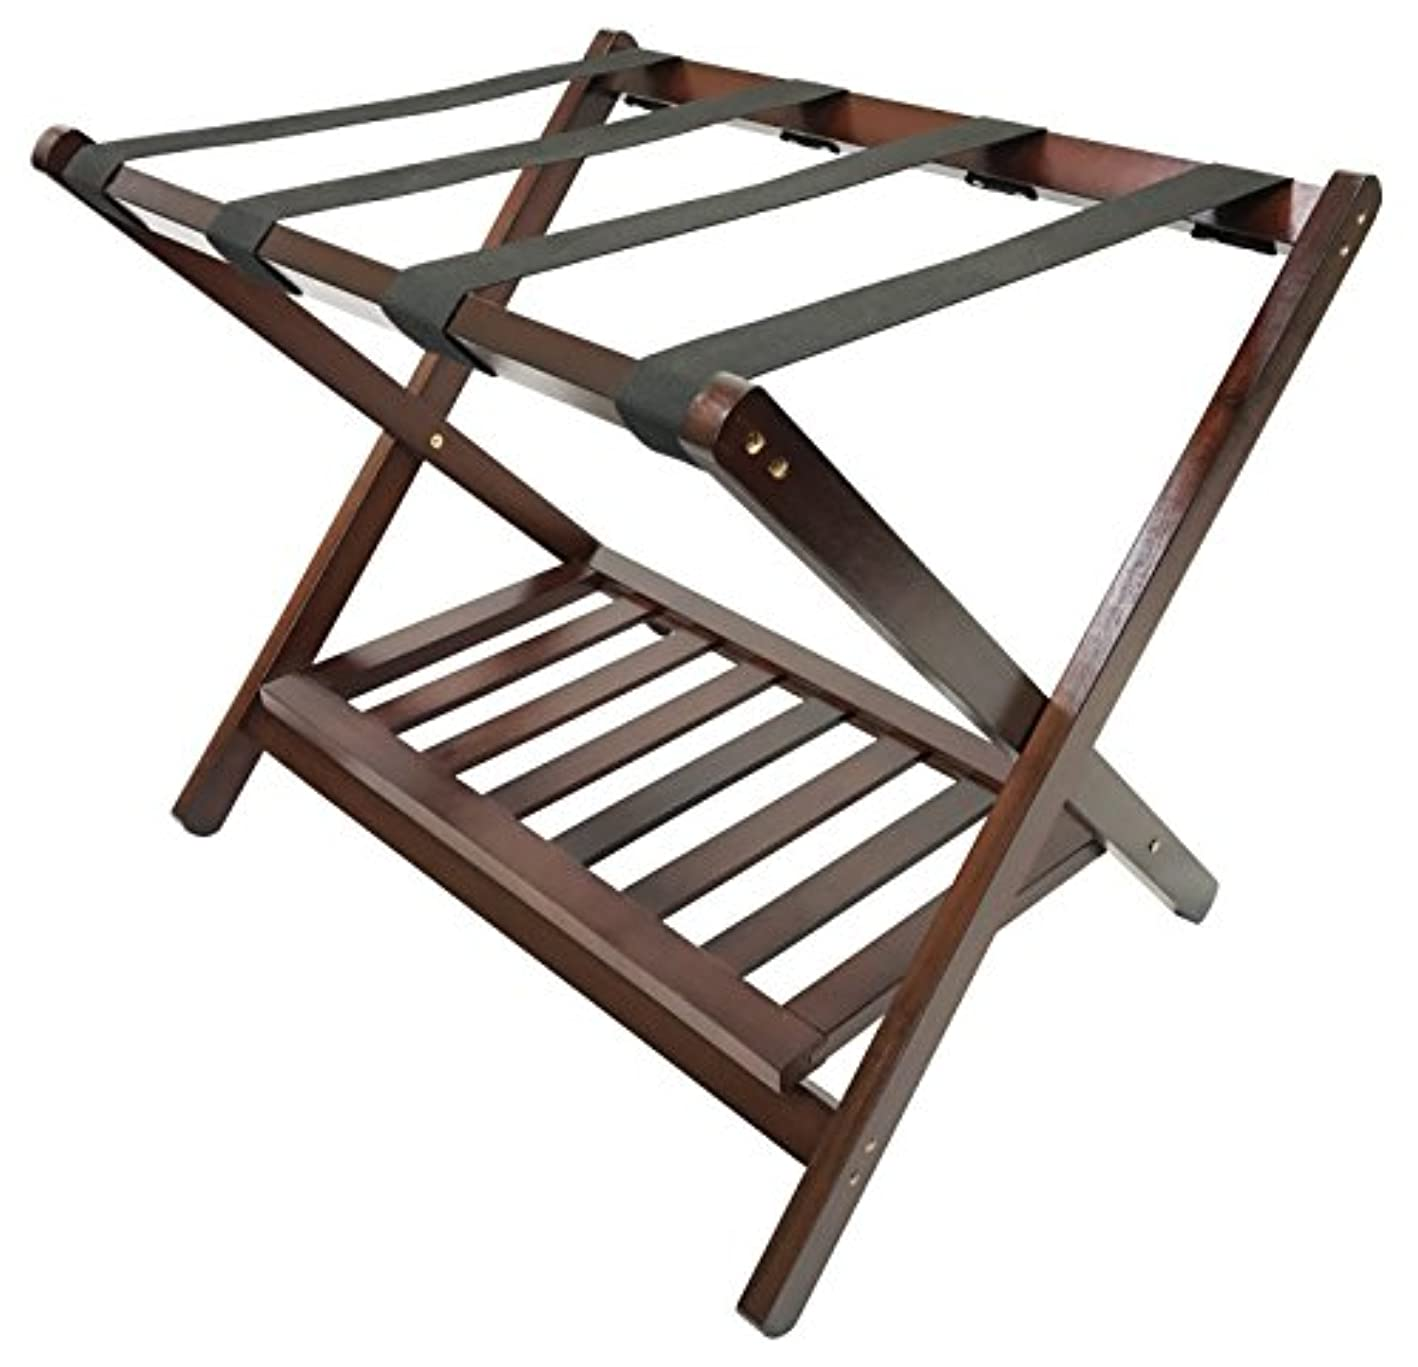 Deluxe Folding Wooden Luggage Rack with Shoe Shelf, Walnut Finish, Hotel Style uxptqr1484166